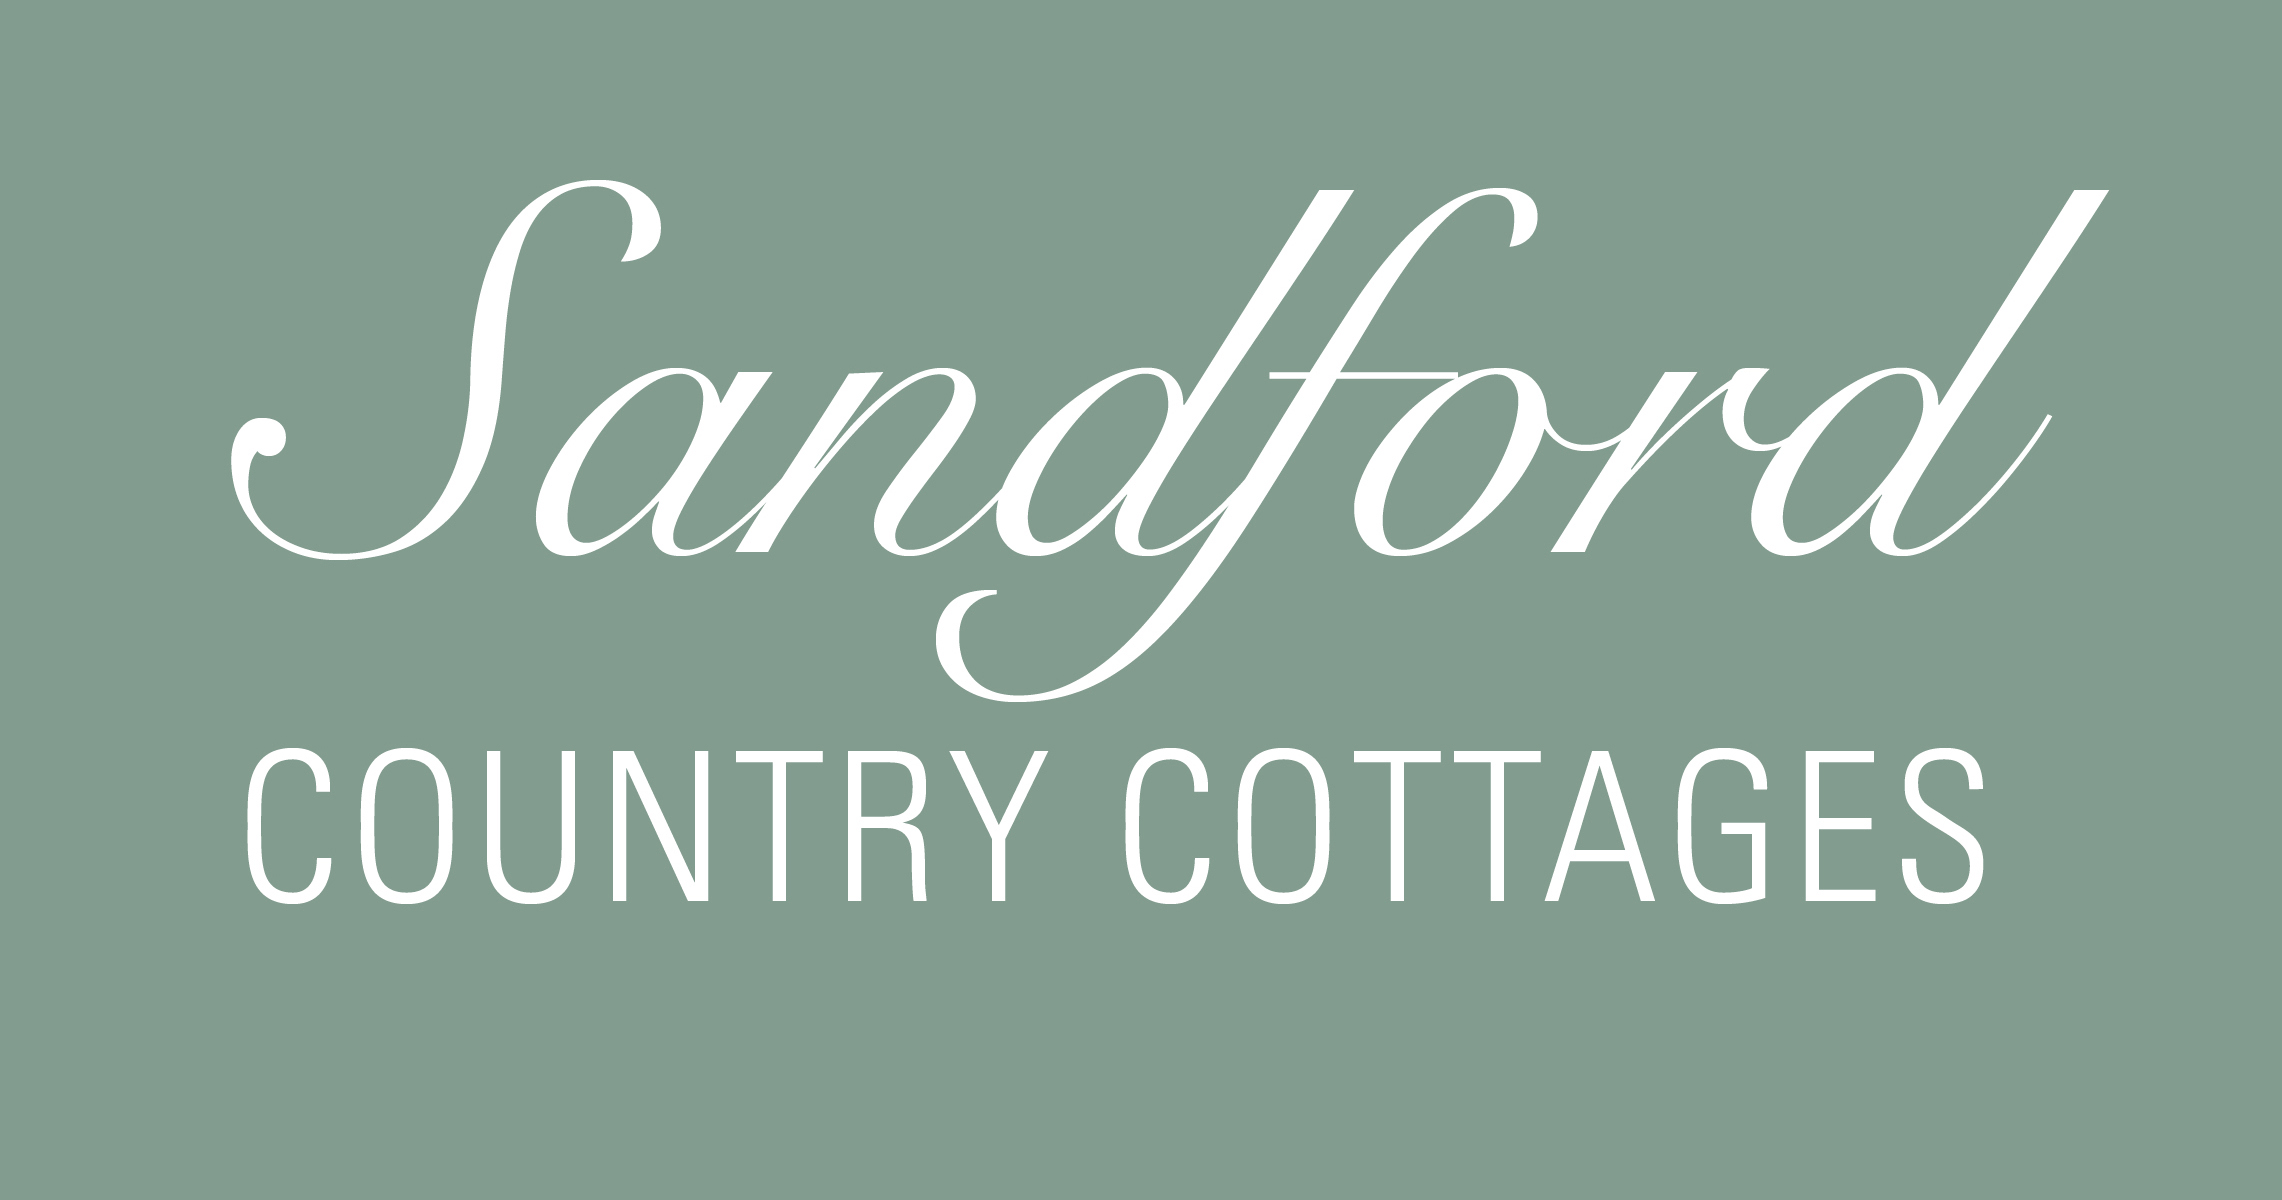 Sandford Country Cottage